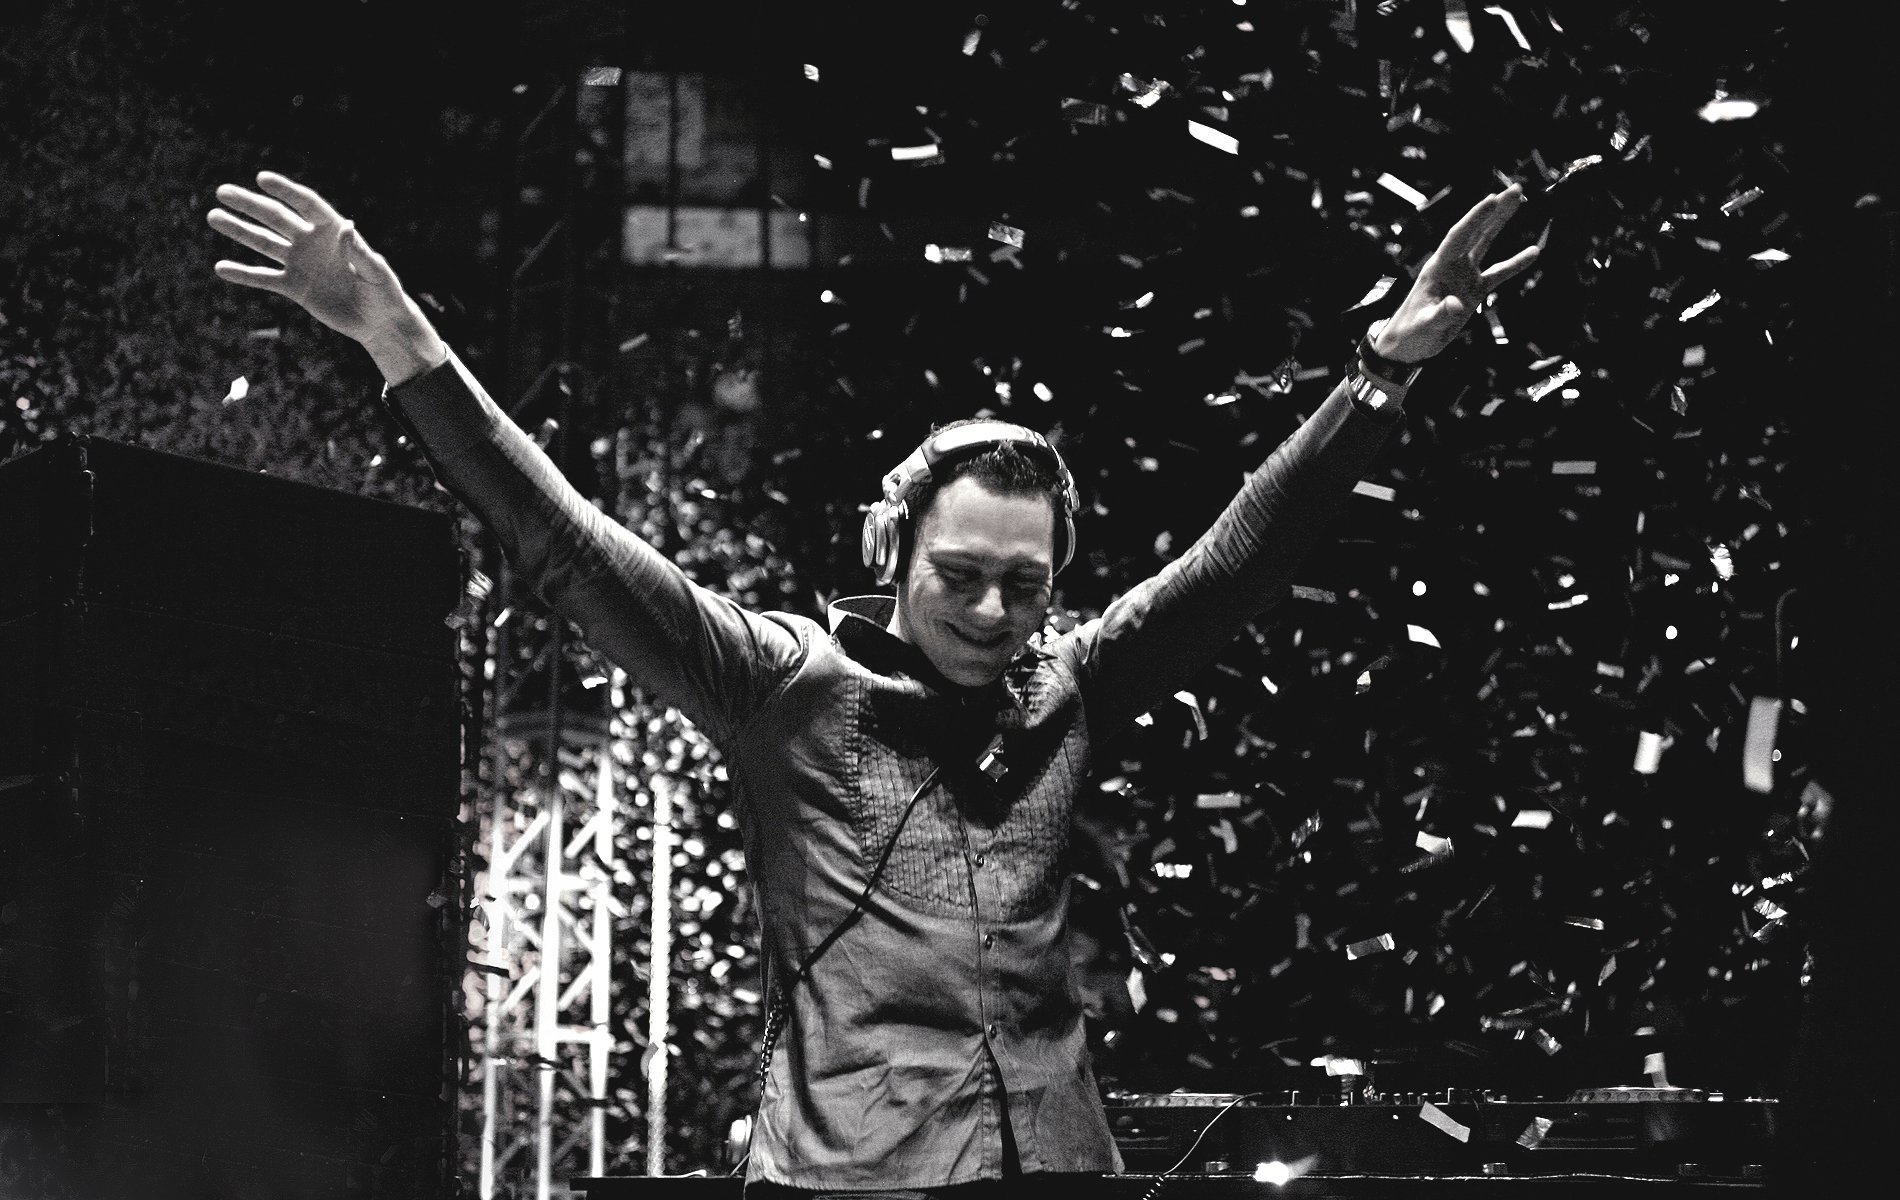 Tiesto HD Tiesto Wallpaper Black and White Arms Raised Live1jpg 1900x1200